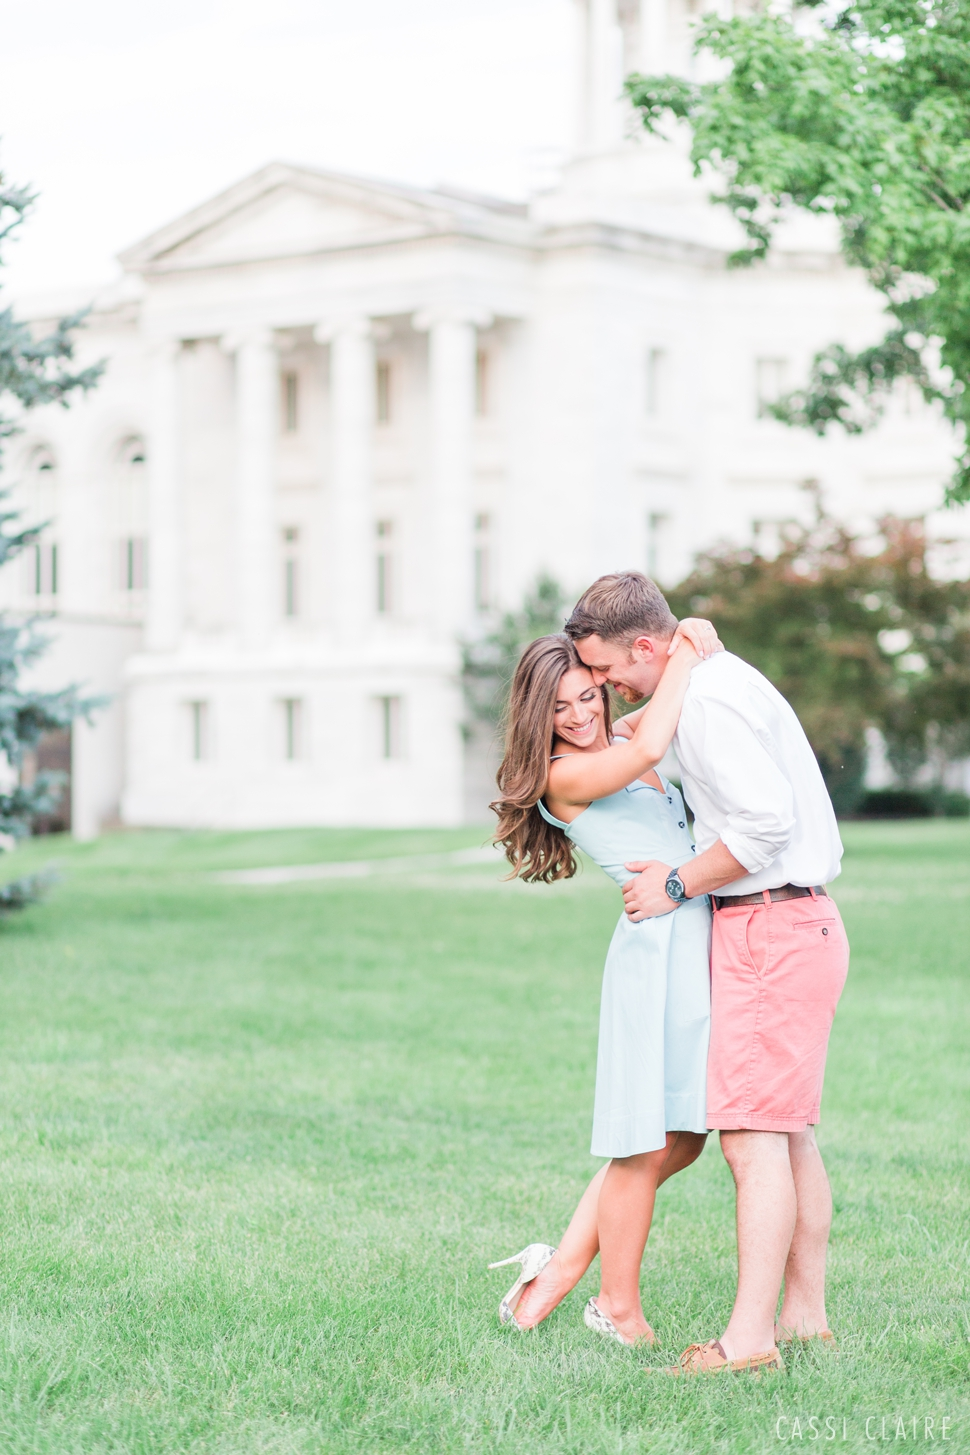 NJ-Engagement-Photos_Cassi-Claire_49.jpg